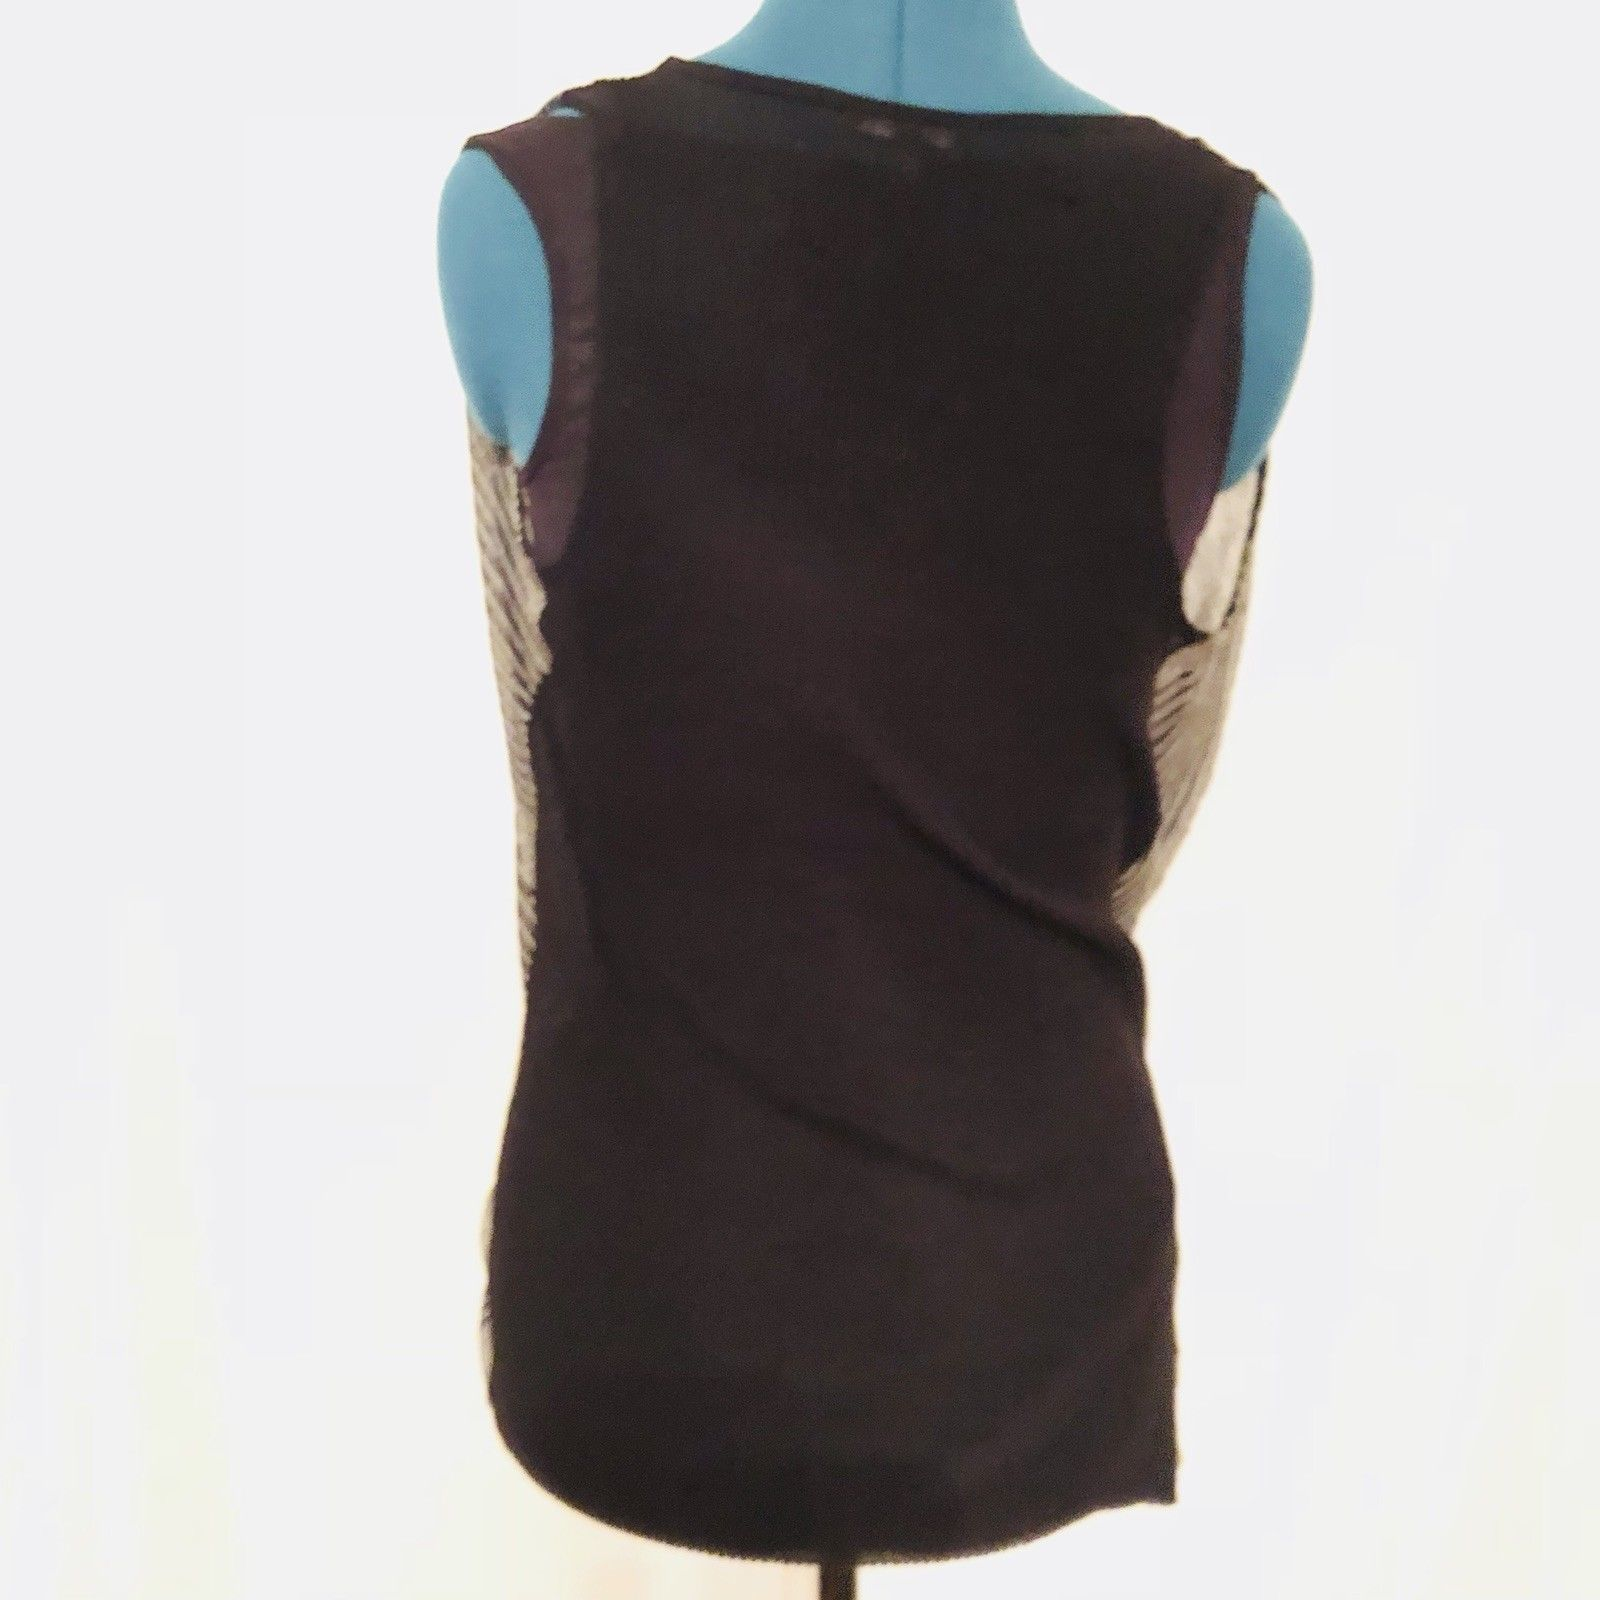 Eileen Fisher Sweater Vest Extra Small Black White Criss Cross